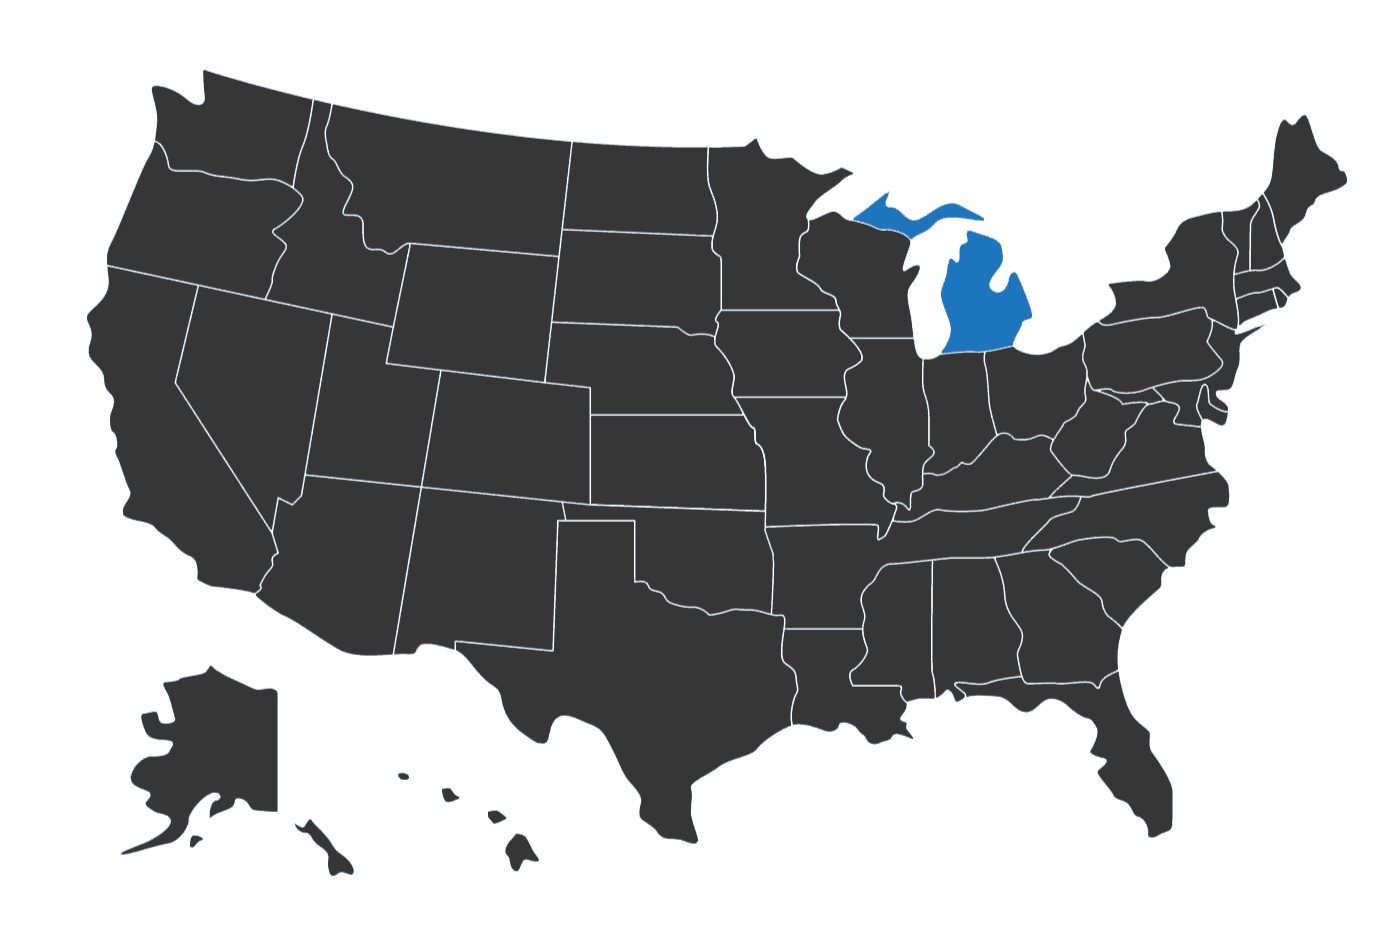 Michigan+State+Map.jpg